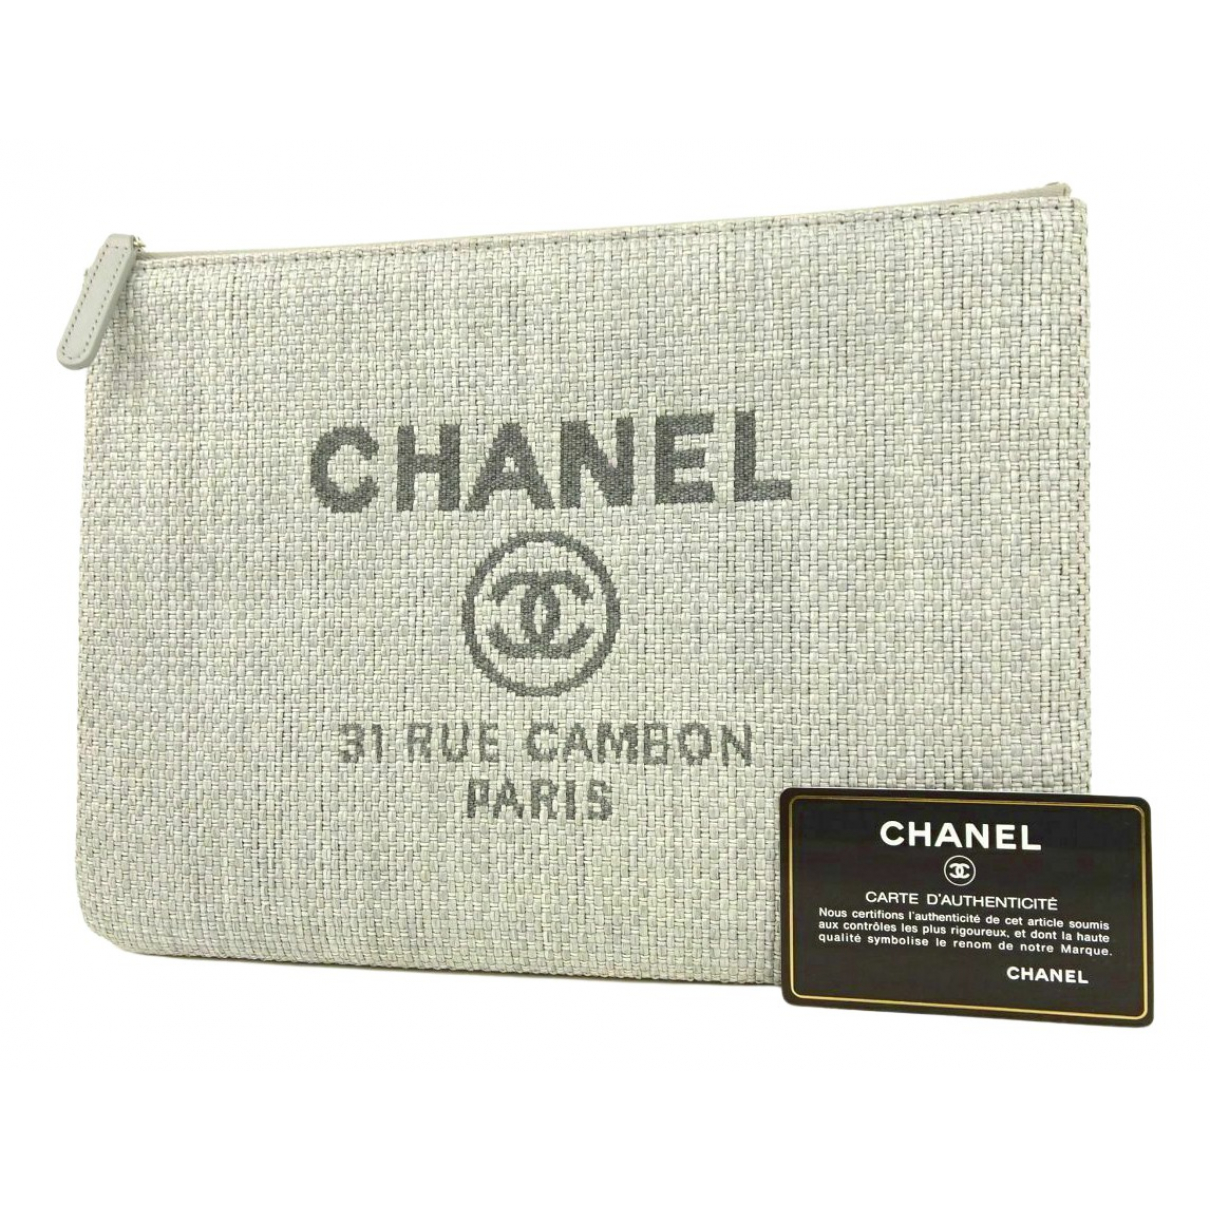 Chanel grey Leather CLUTCH BAGS